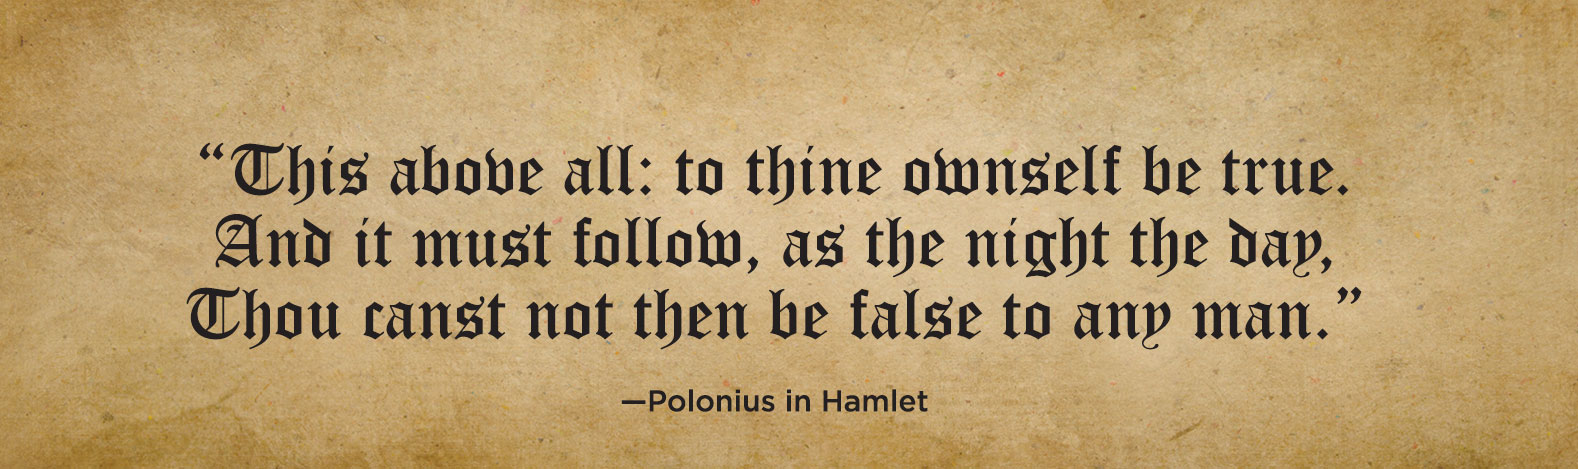 Polonius-Then-Movers and Shakespeare—Shakespeare and Business.jpg